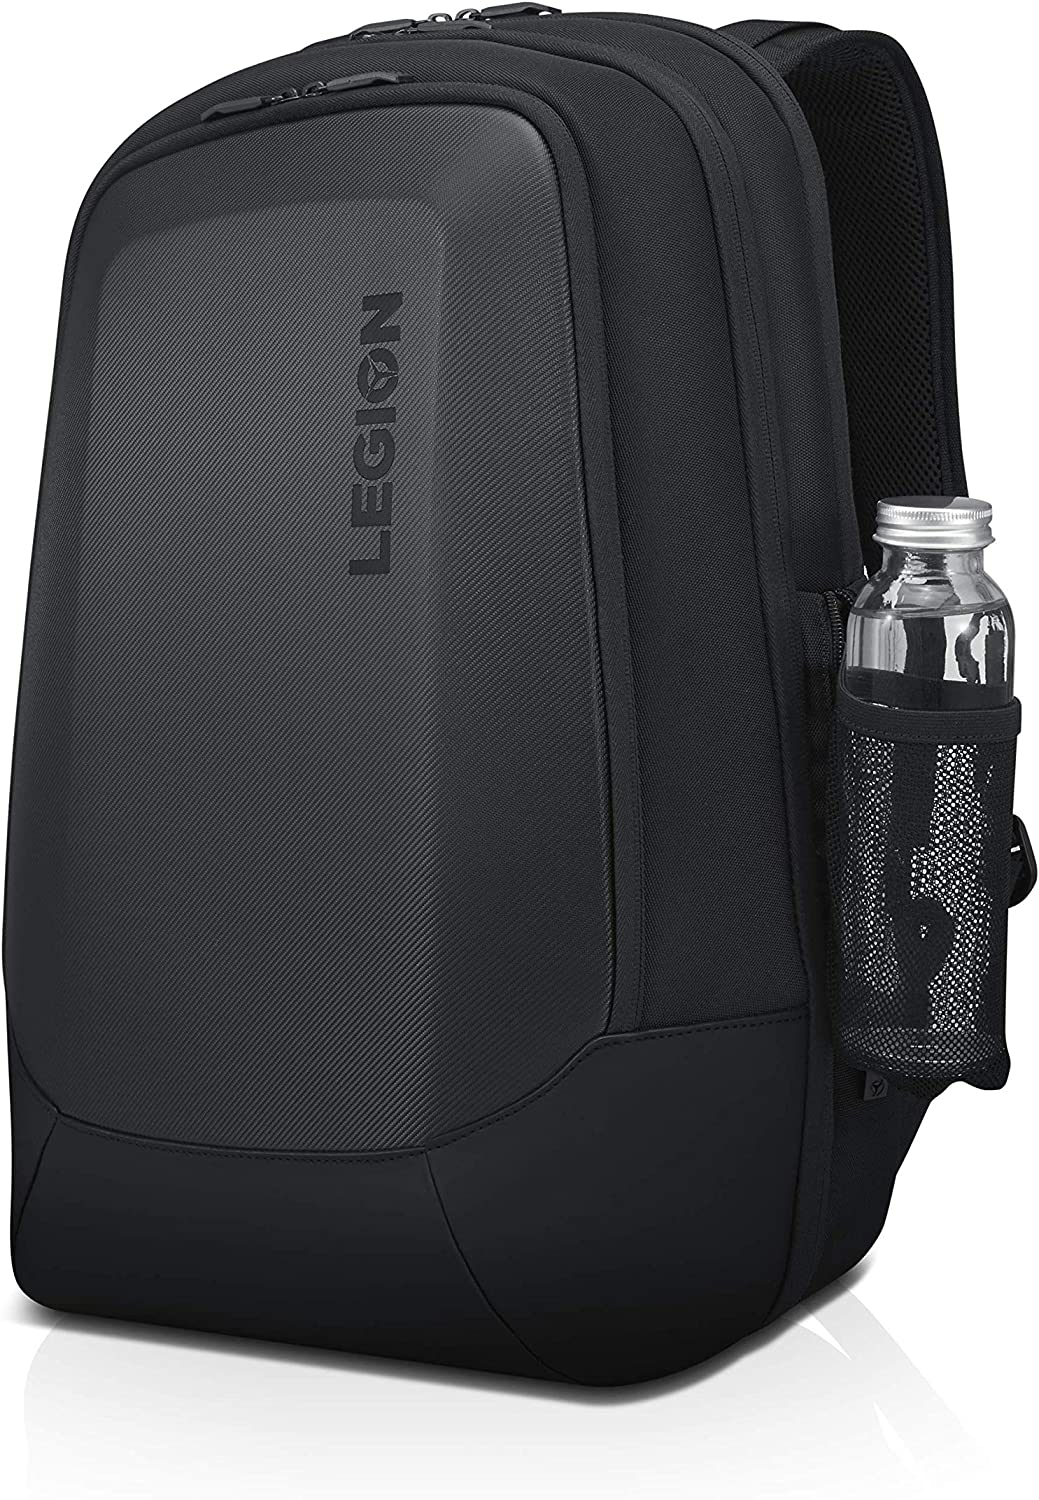 "Lenovo Legion 17"" Armored Backpack II, Gaming Laptop Bag, Double-Layered Protection, Dedicated Storage Pockets, GX40V10007, Black"